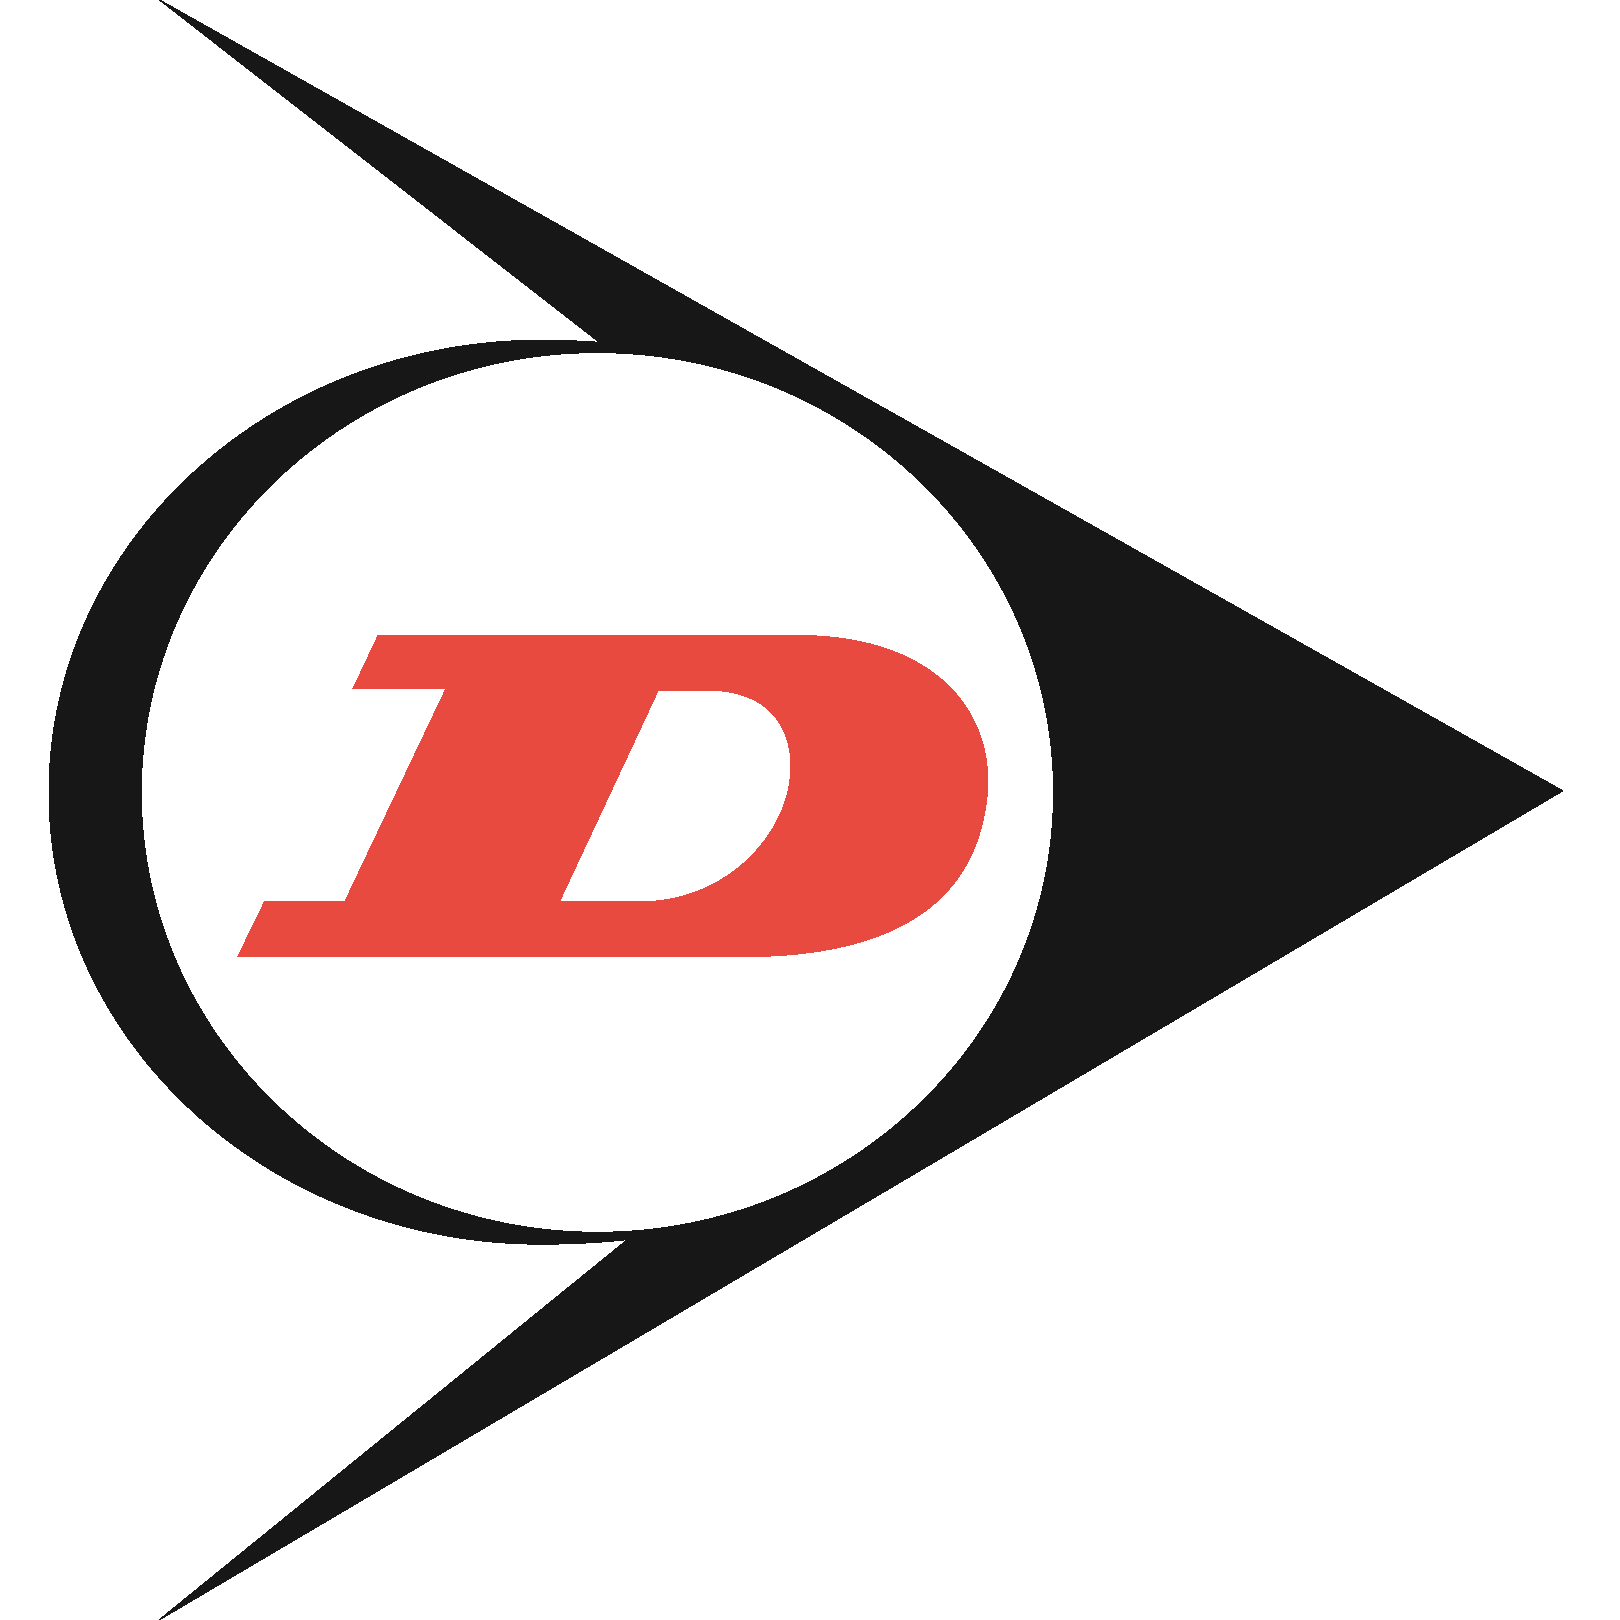 Dunlop Systems & Components small logo